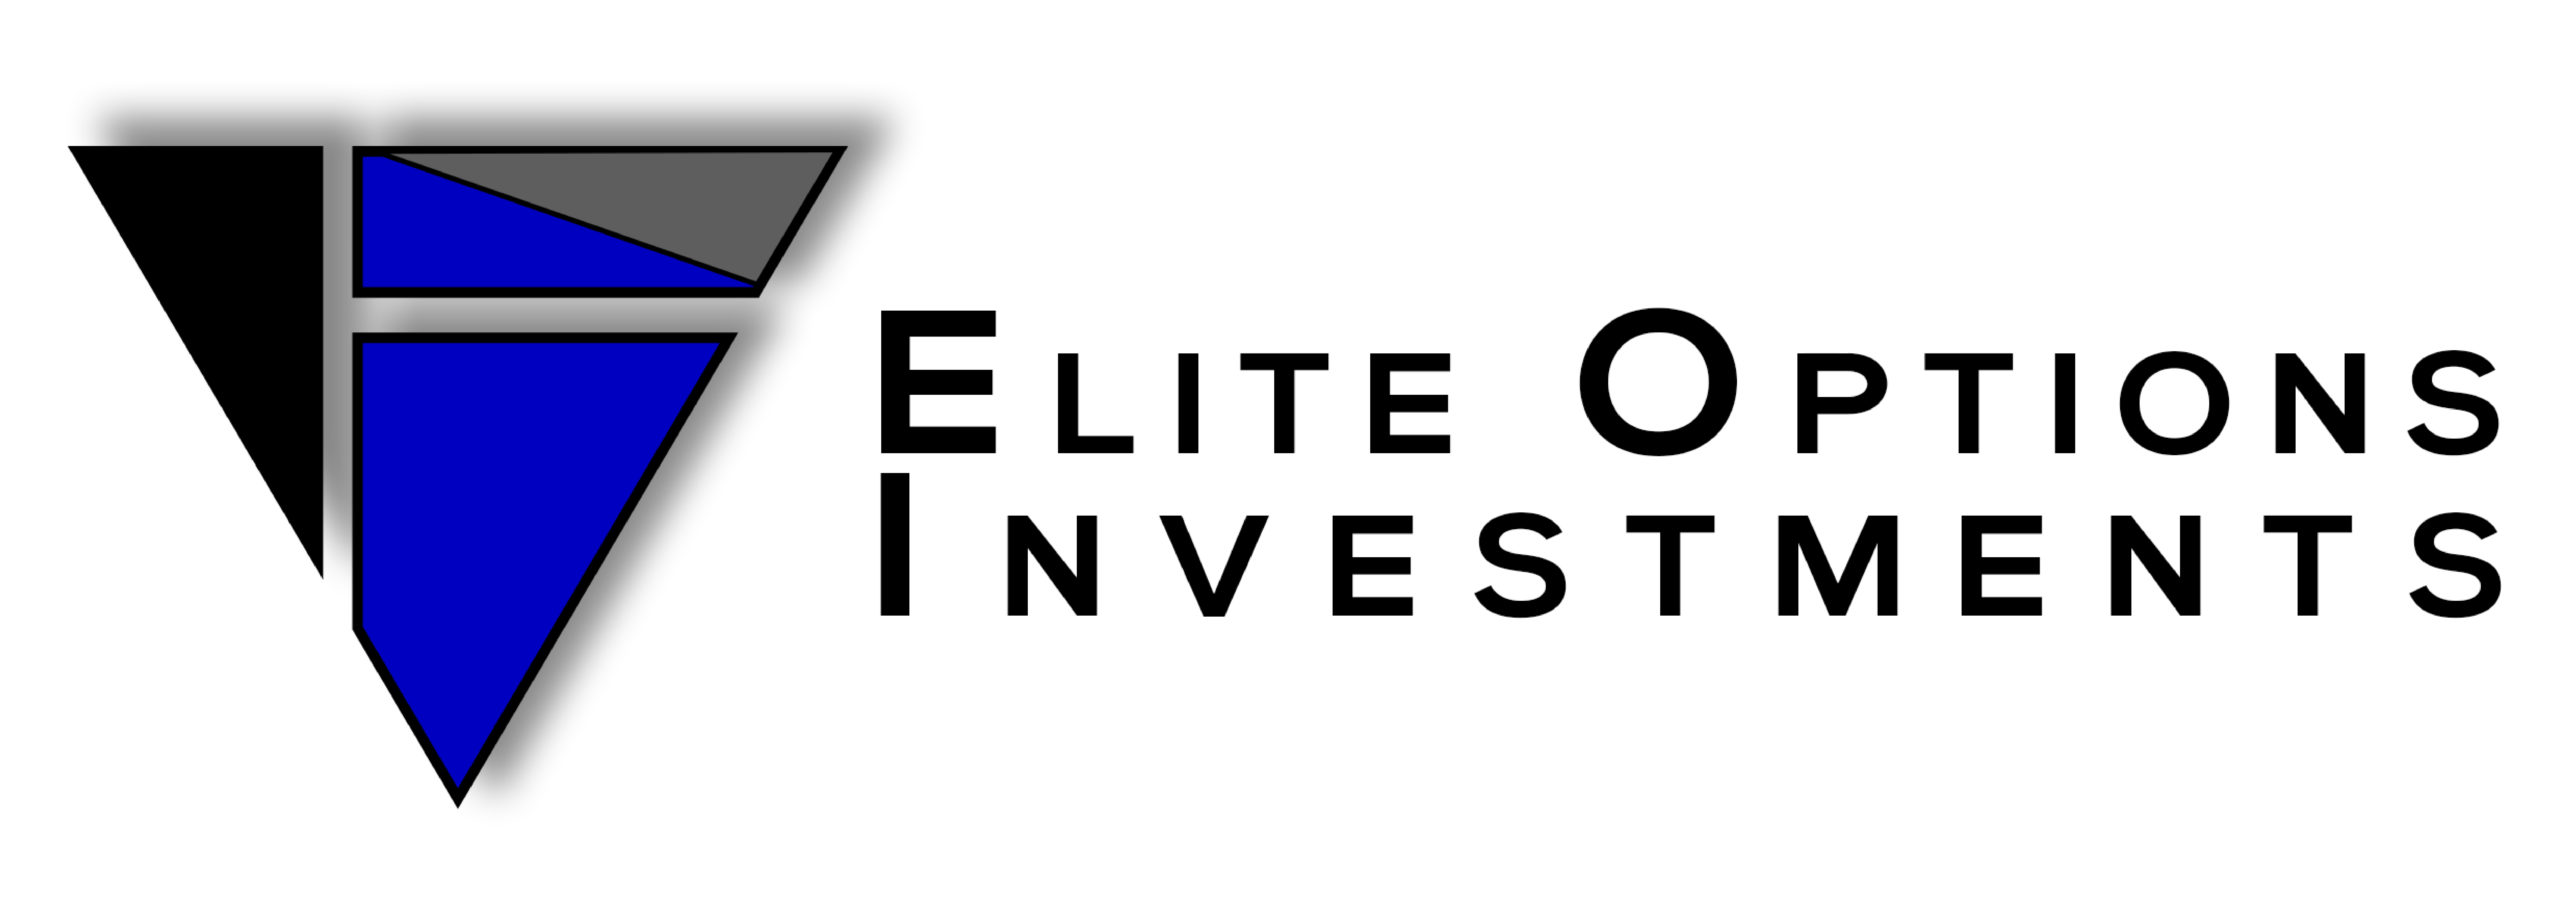 Elite Options Investments, LLC.